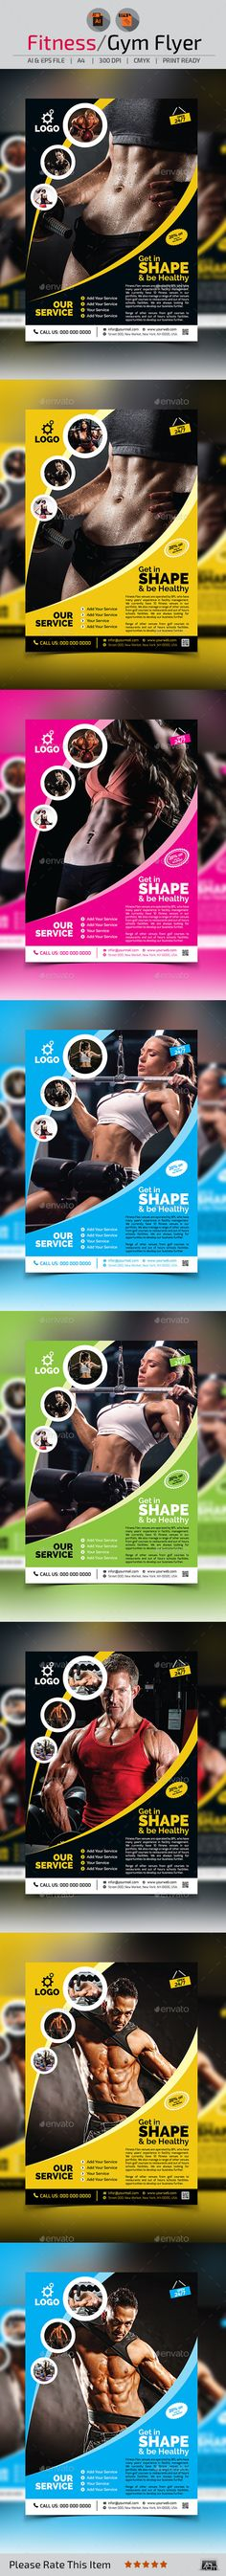 Fitness / Gym Flyer Template v2